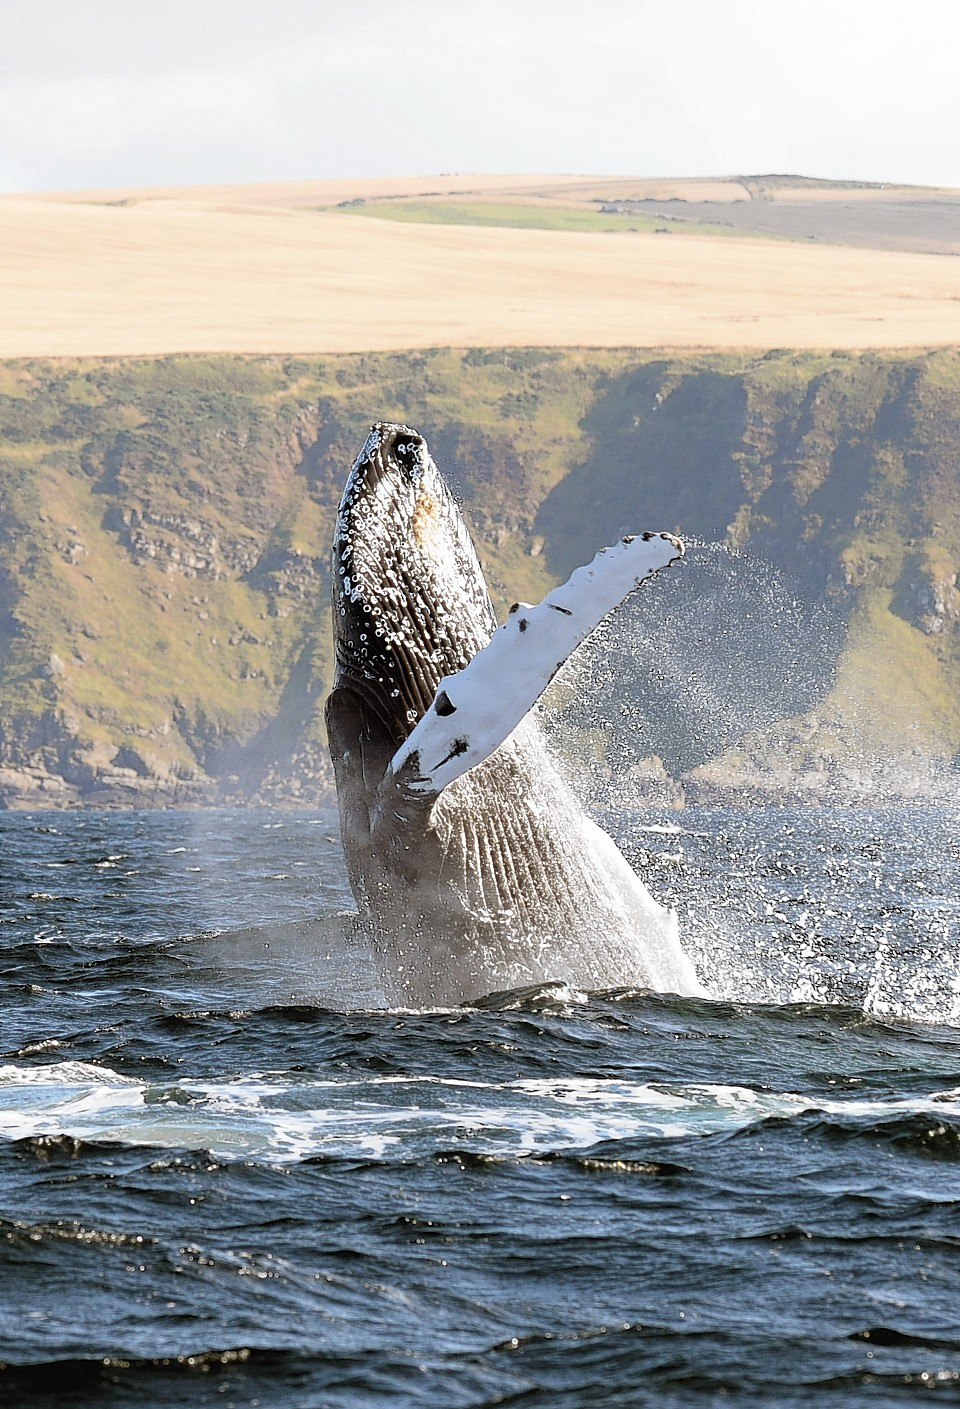 Majestic humpback whale breaks the water off the coast of Scotland near Banff in the Moray Firth